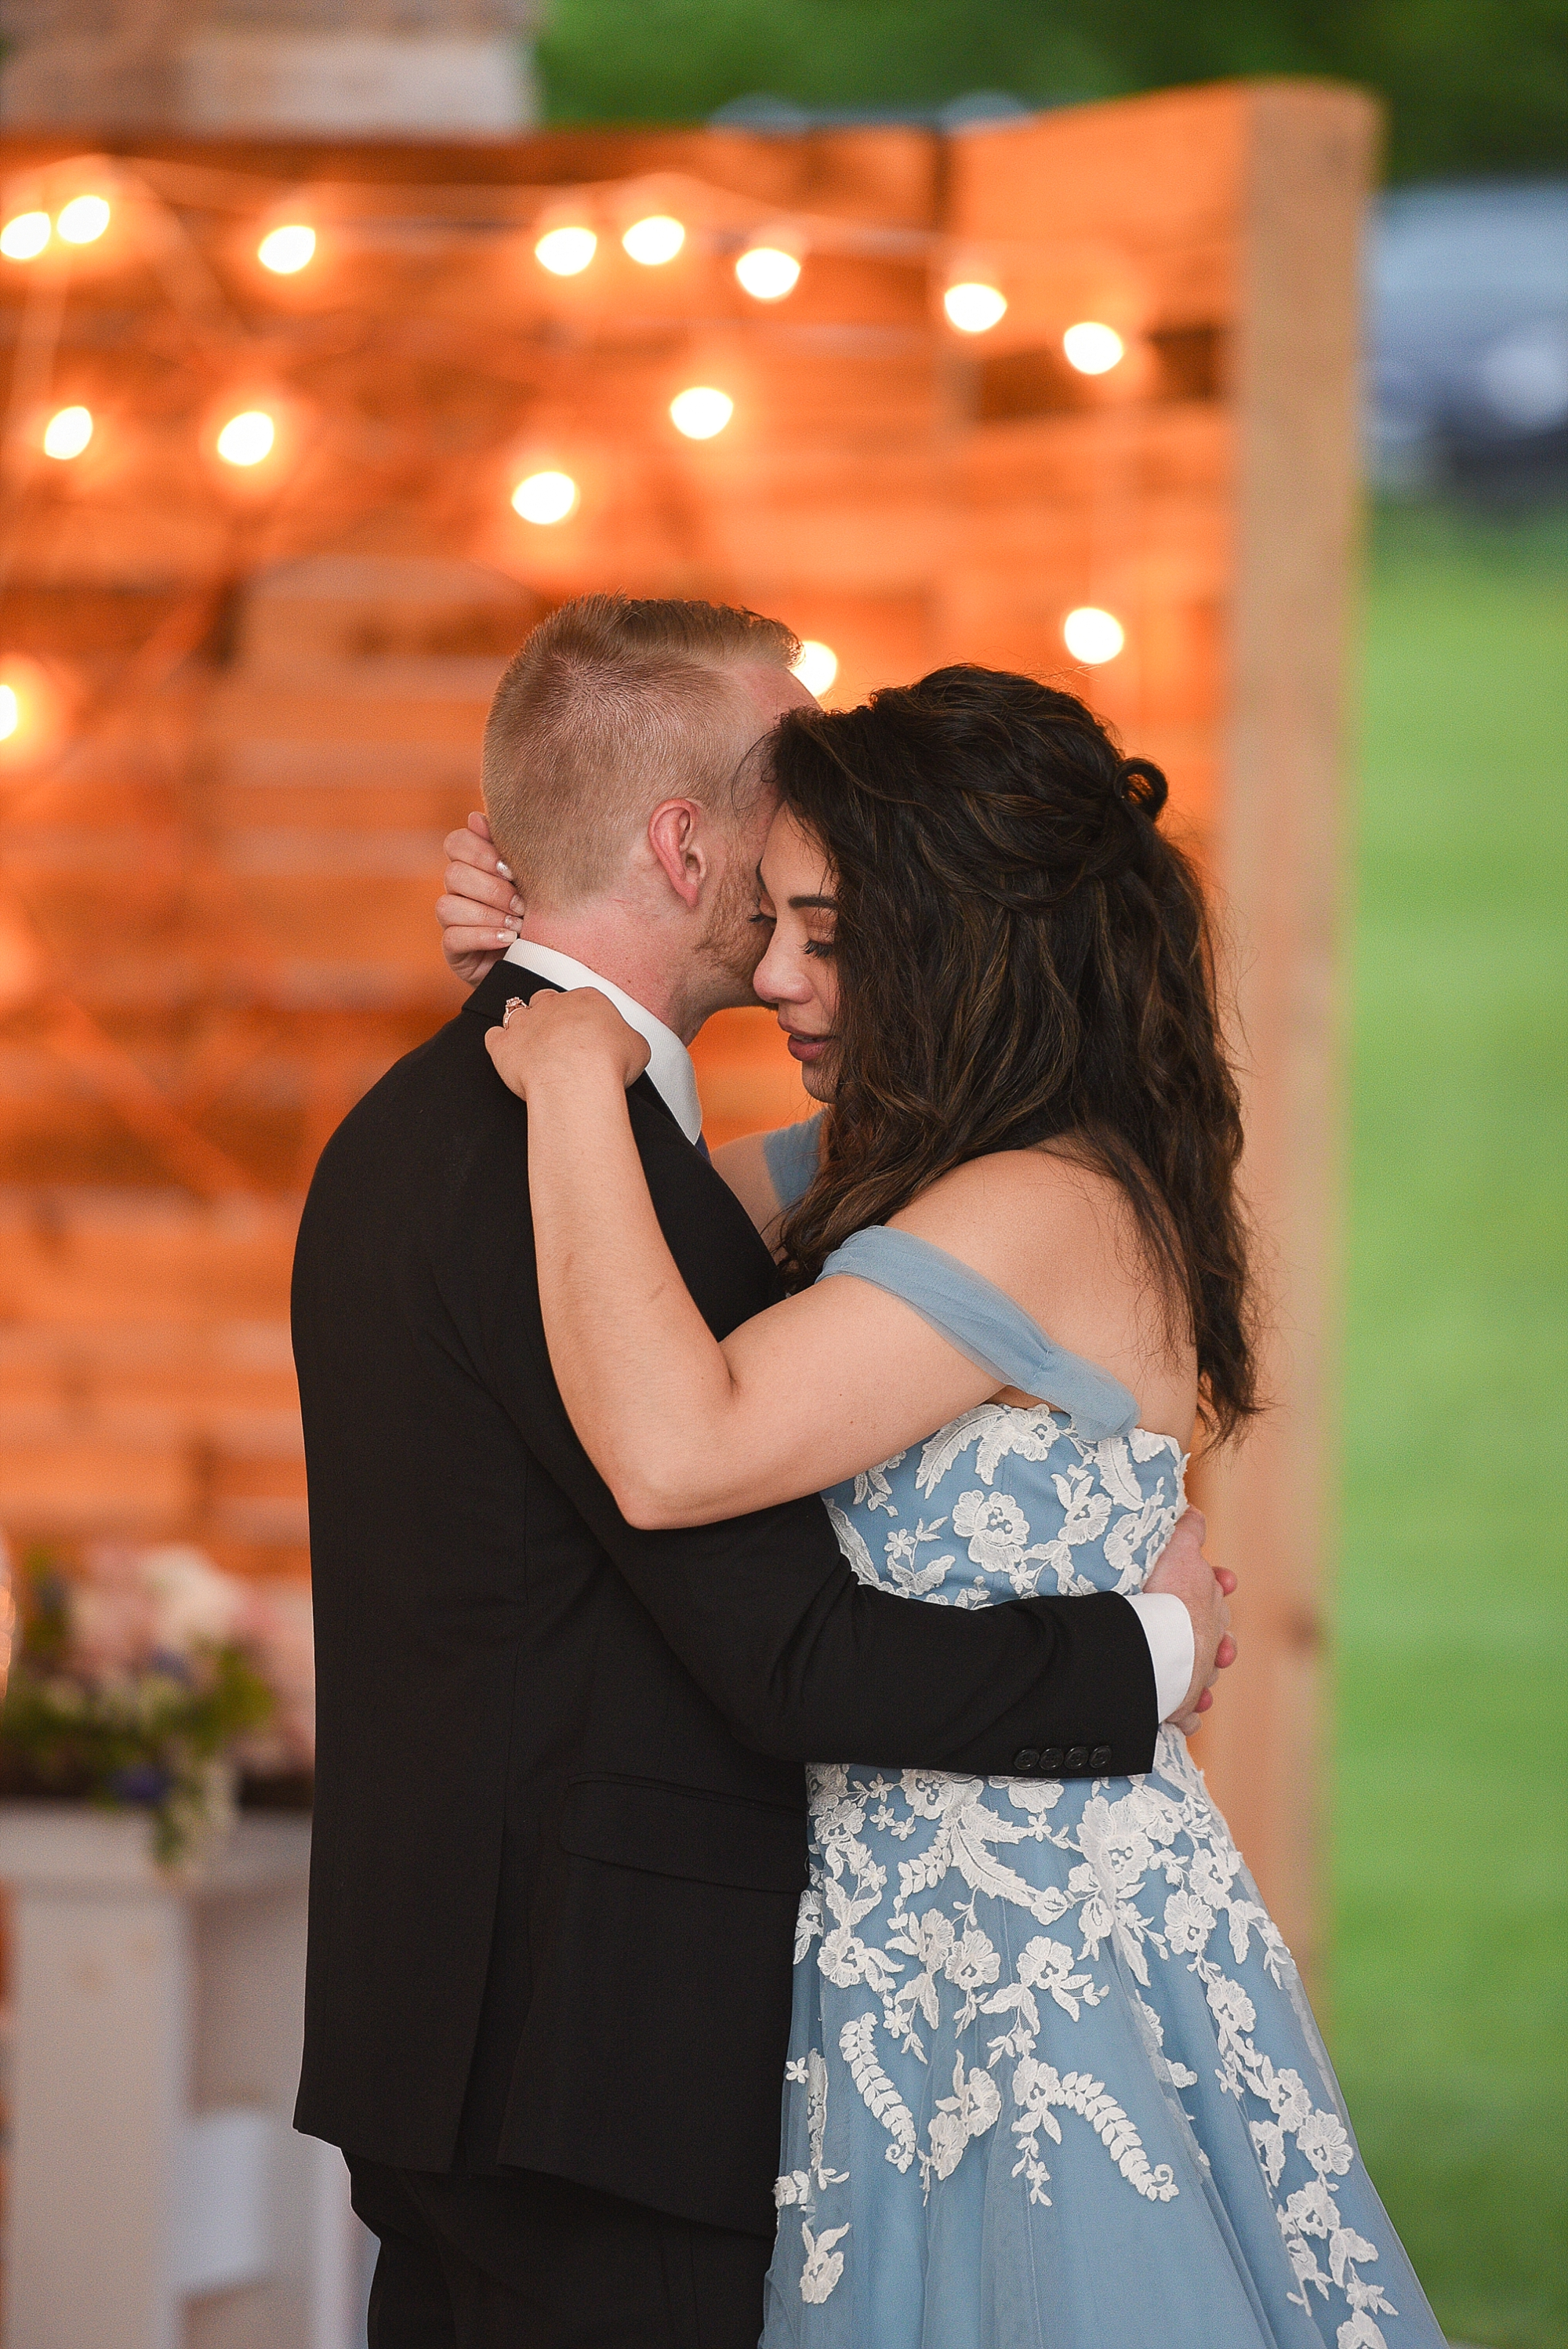 Mel + Taylor's Buckeye Farm Wedding | Blacksburg Wedding Photographer, Holly Cromer